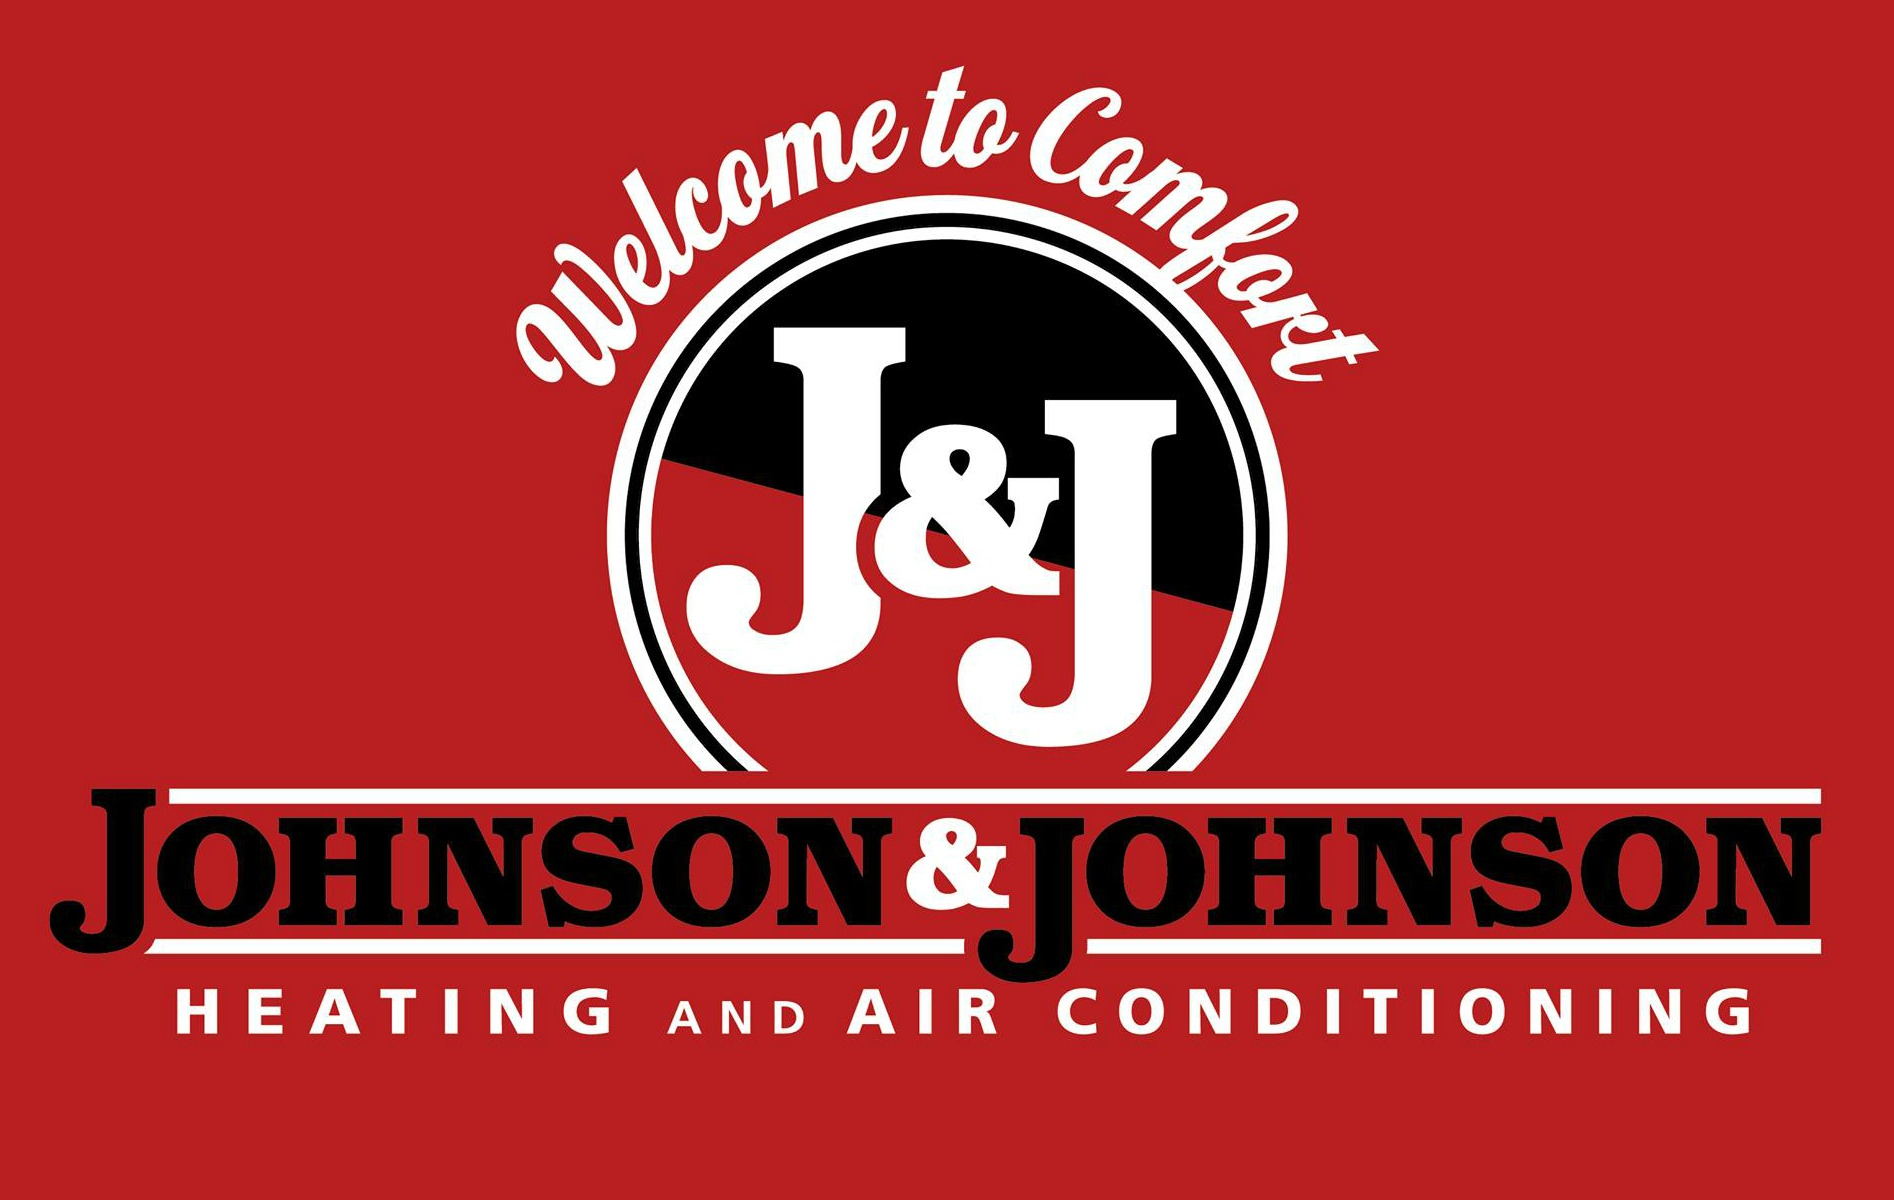 Johnson & Johnson Heating & Air Conditioning | Heating & Air Conditioning/HVAC at 124 Reliance Rd - Martinsburg WV - Reviews - Photos - Phone Number